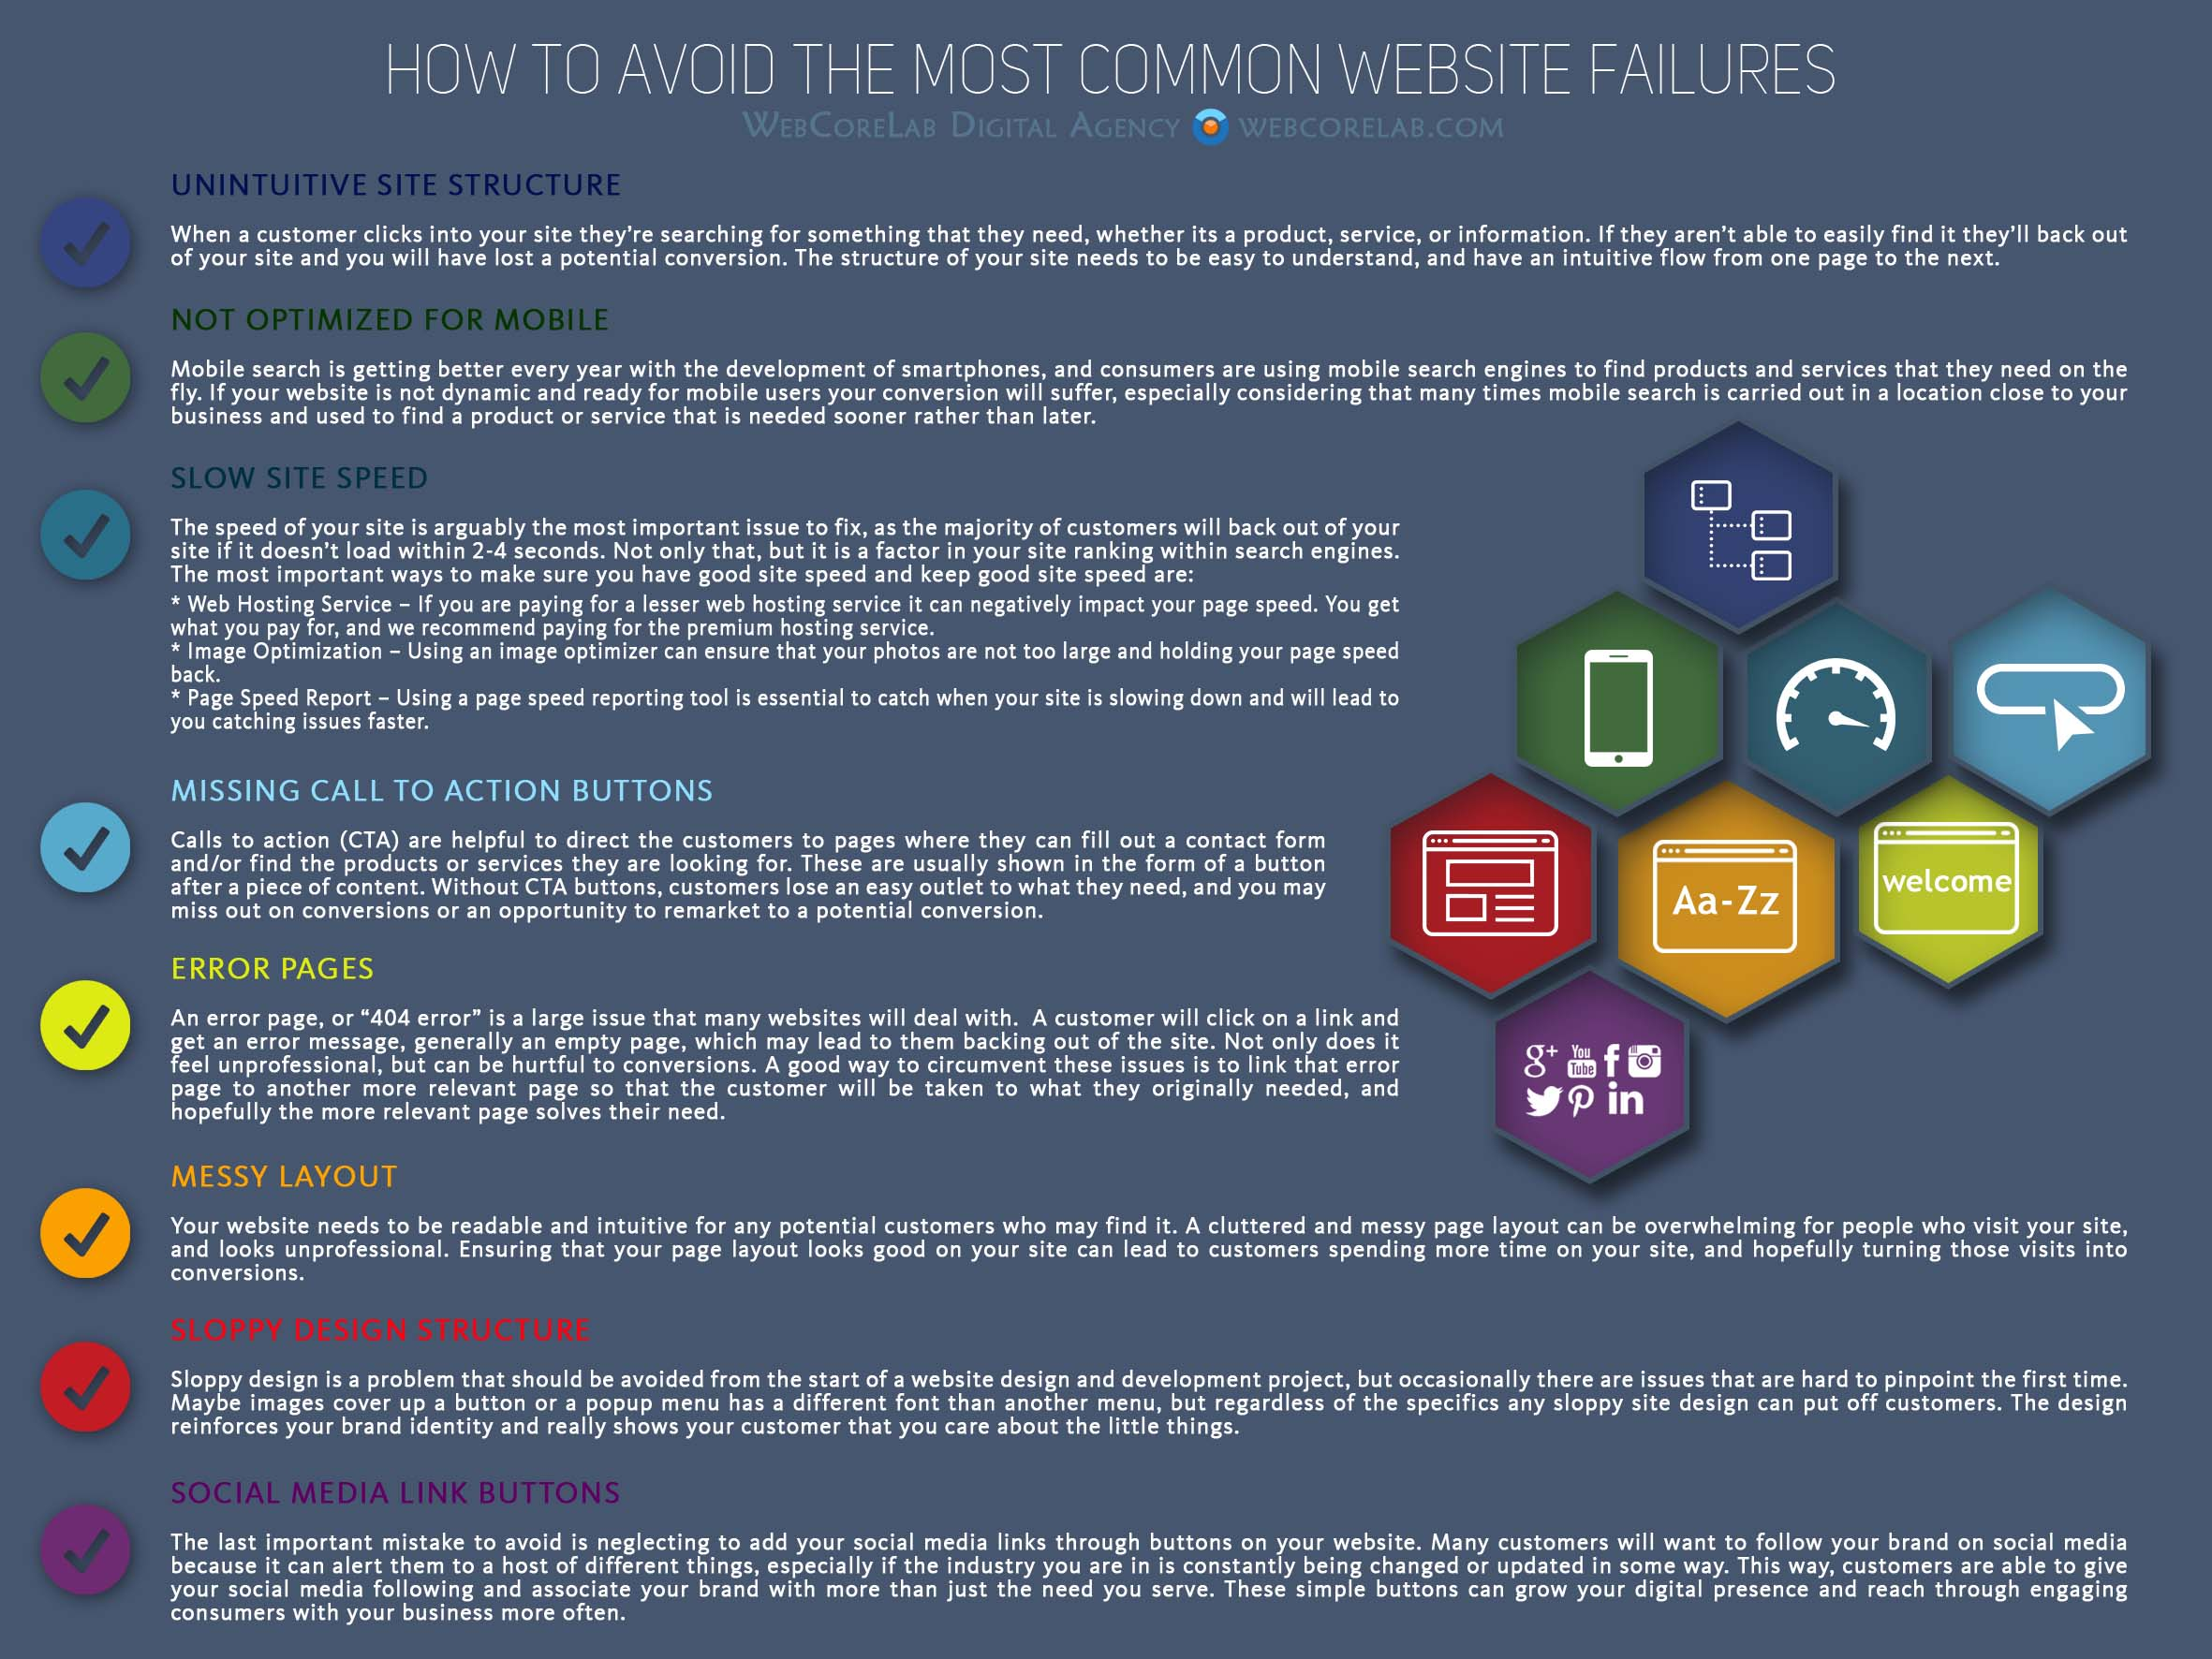 Webcorelab digital agency create websites without failures